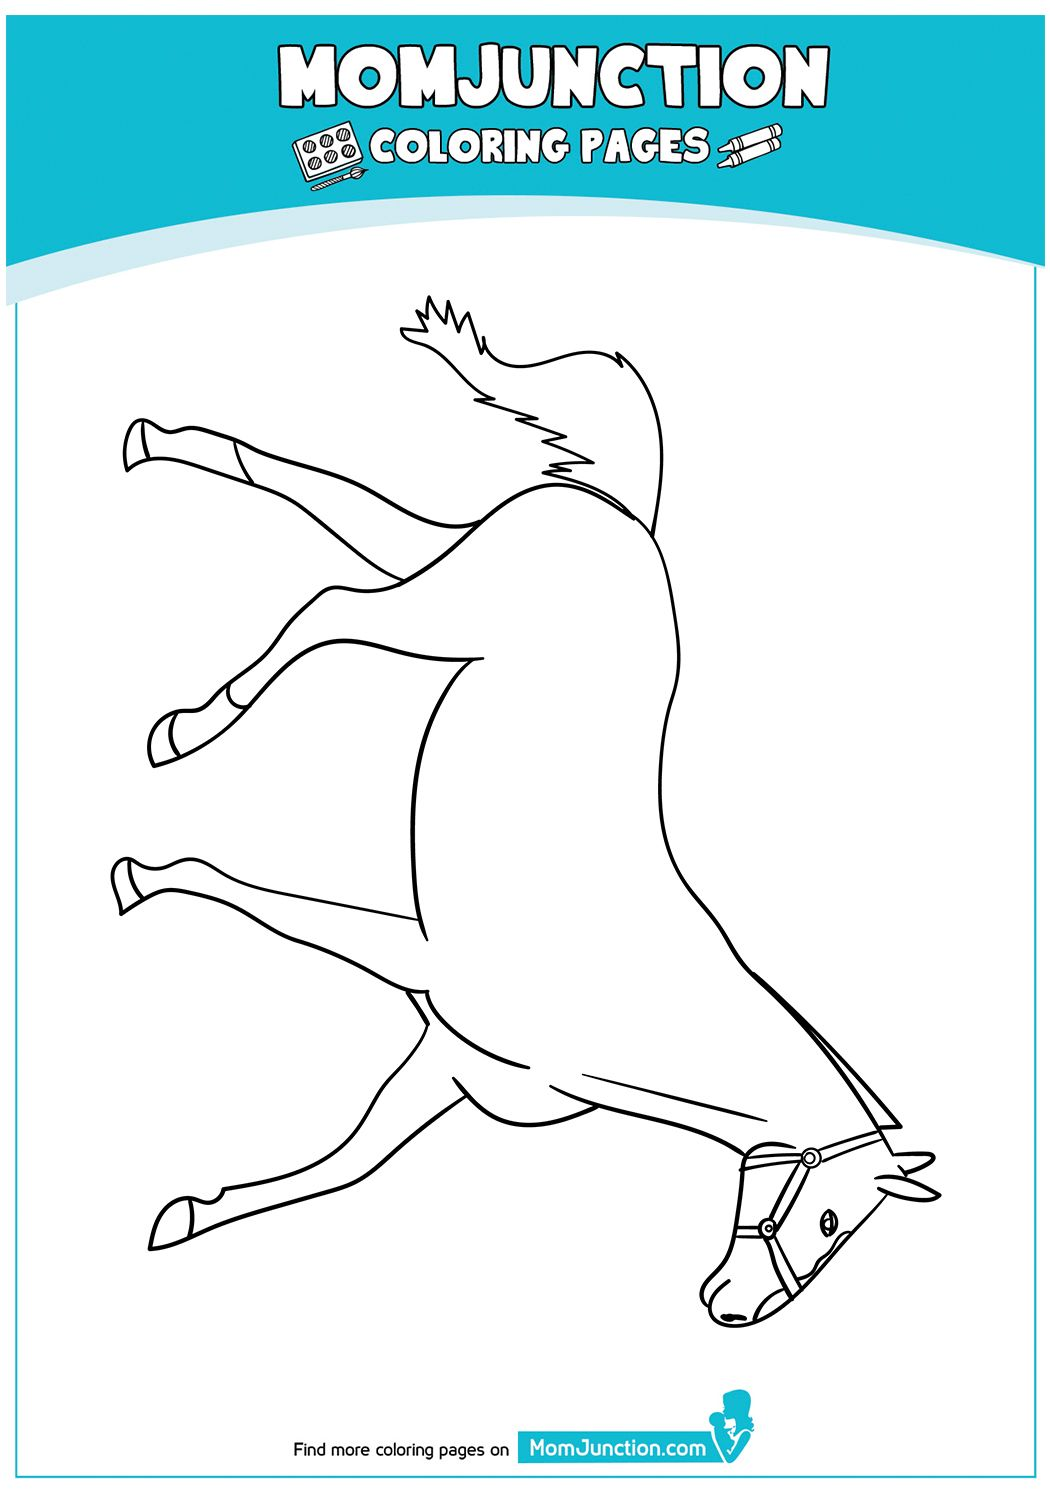 Heavy Warmblood Mare 17 Coloring Pages Horse Coloring Pages Cute Coloring Pages [ 1500 x 1050 Pixel ]